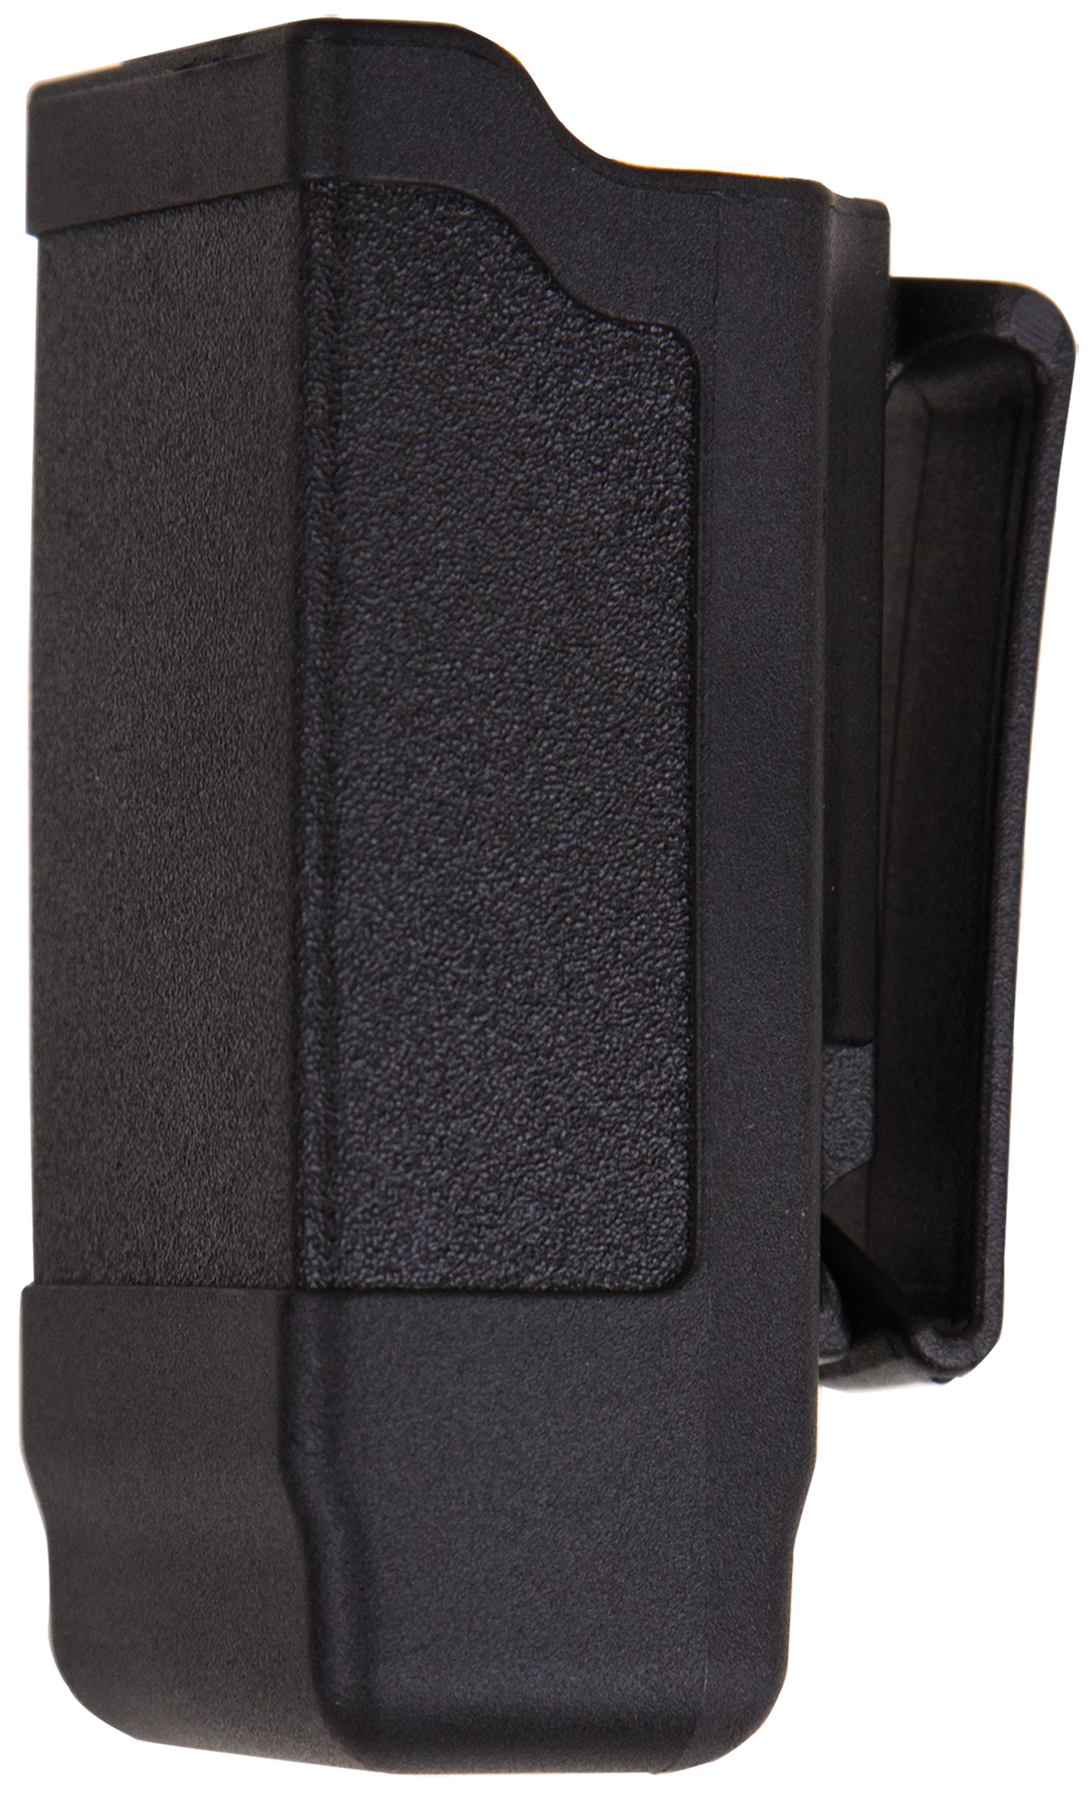 BLACKHAWK!® Polymer Single Magazine Pouch - Double Stack 9mm/.40 S&W - Black